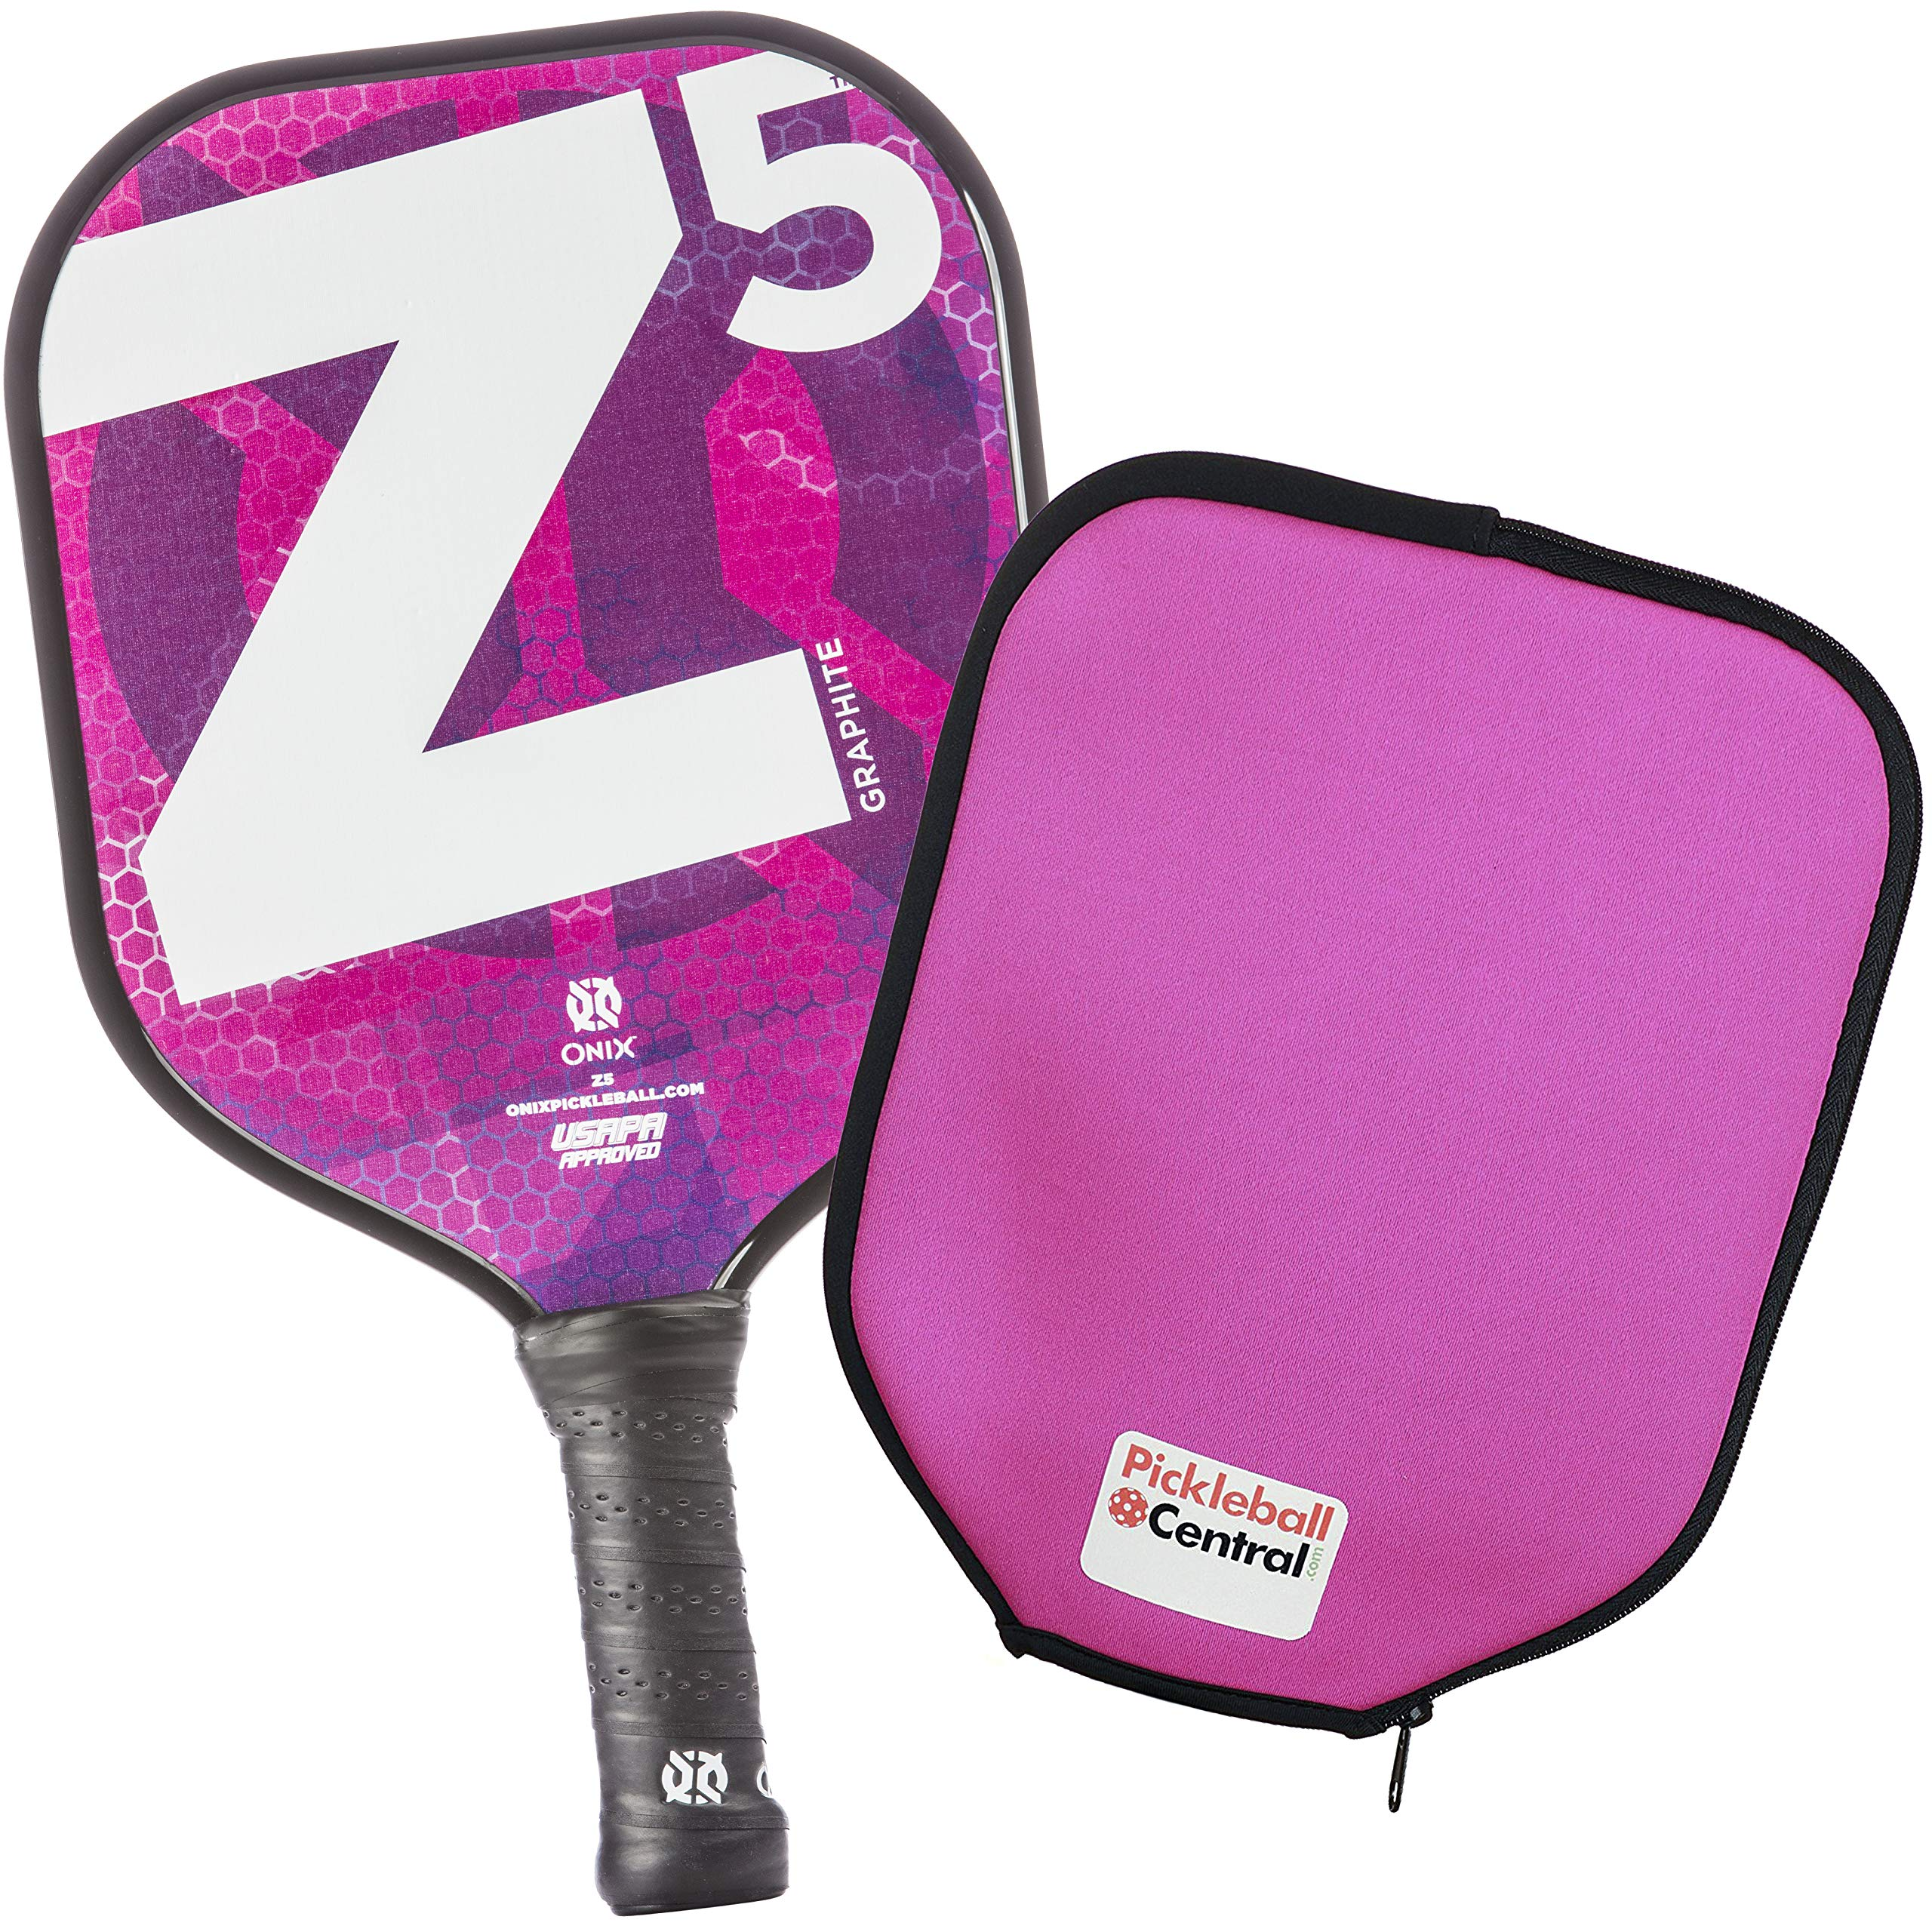 Onix Z5 Graphite Pickleball Paddle and Paddle Cover (Mod Pink) by Onix (Image #1)